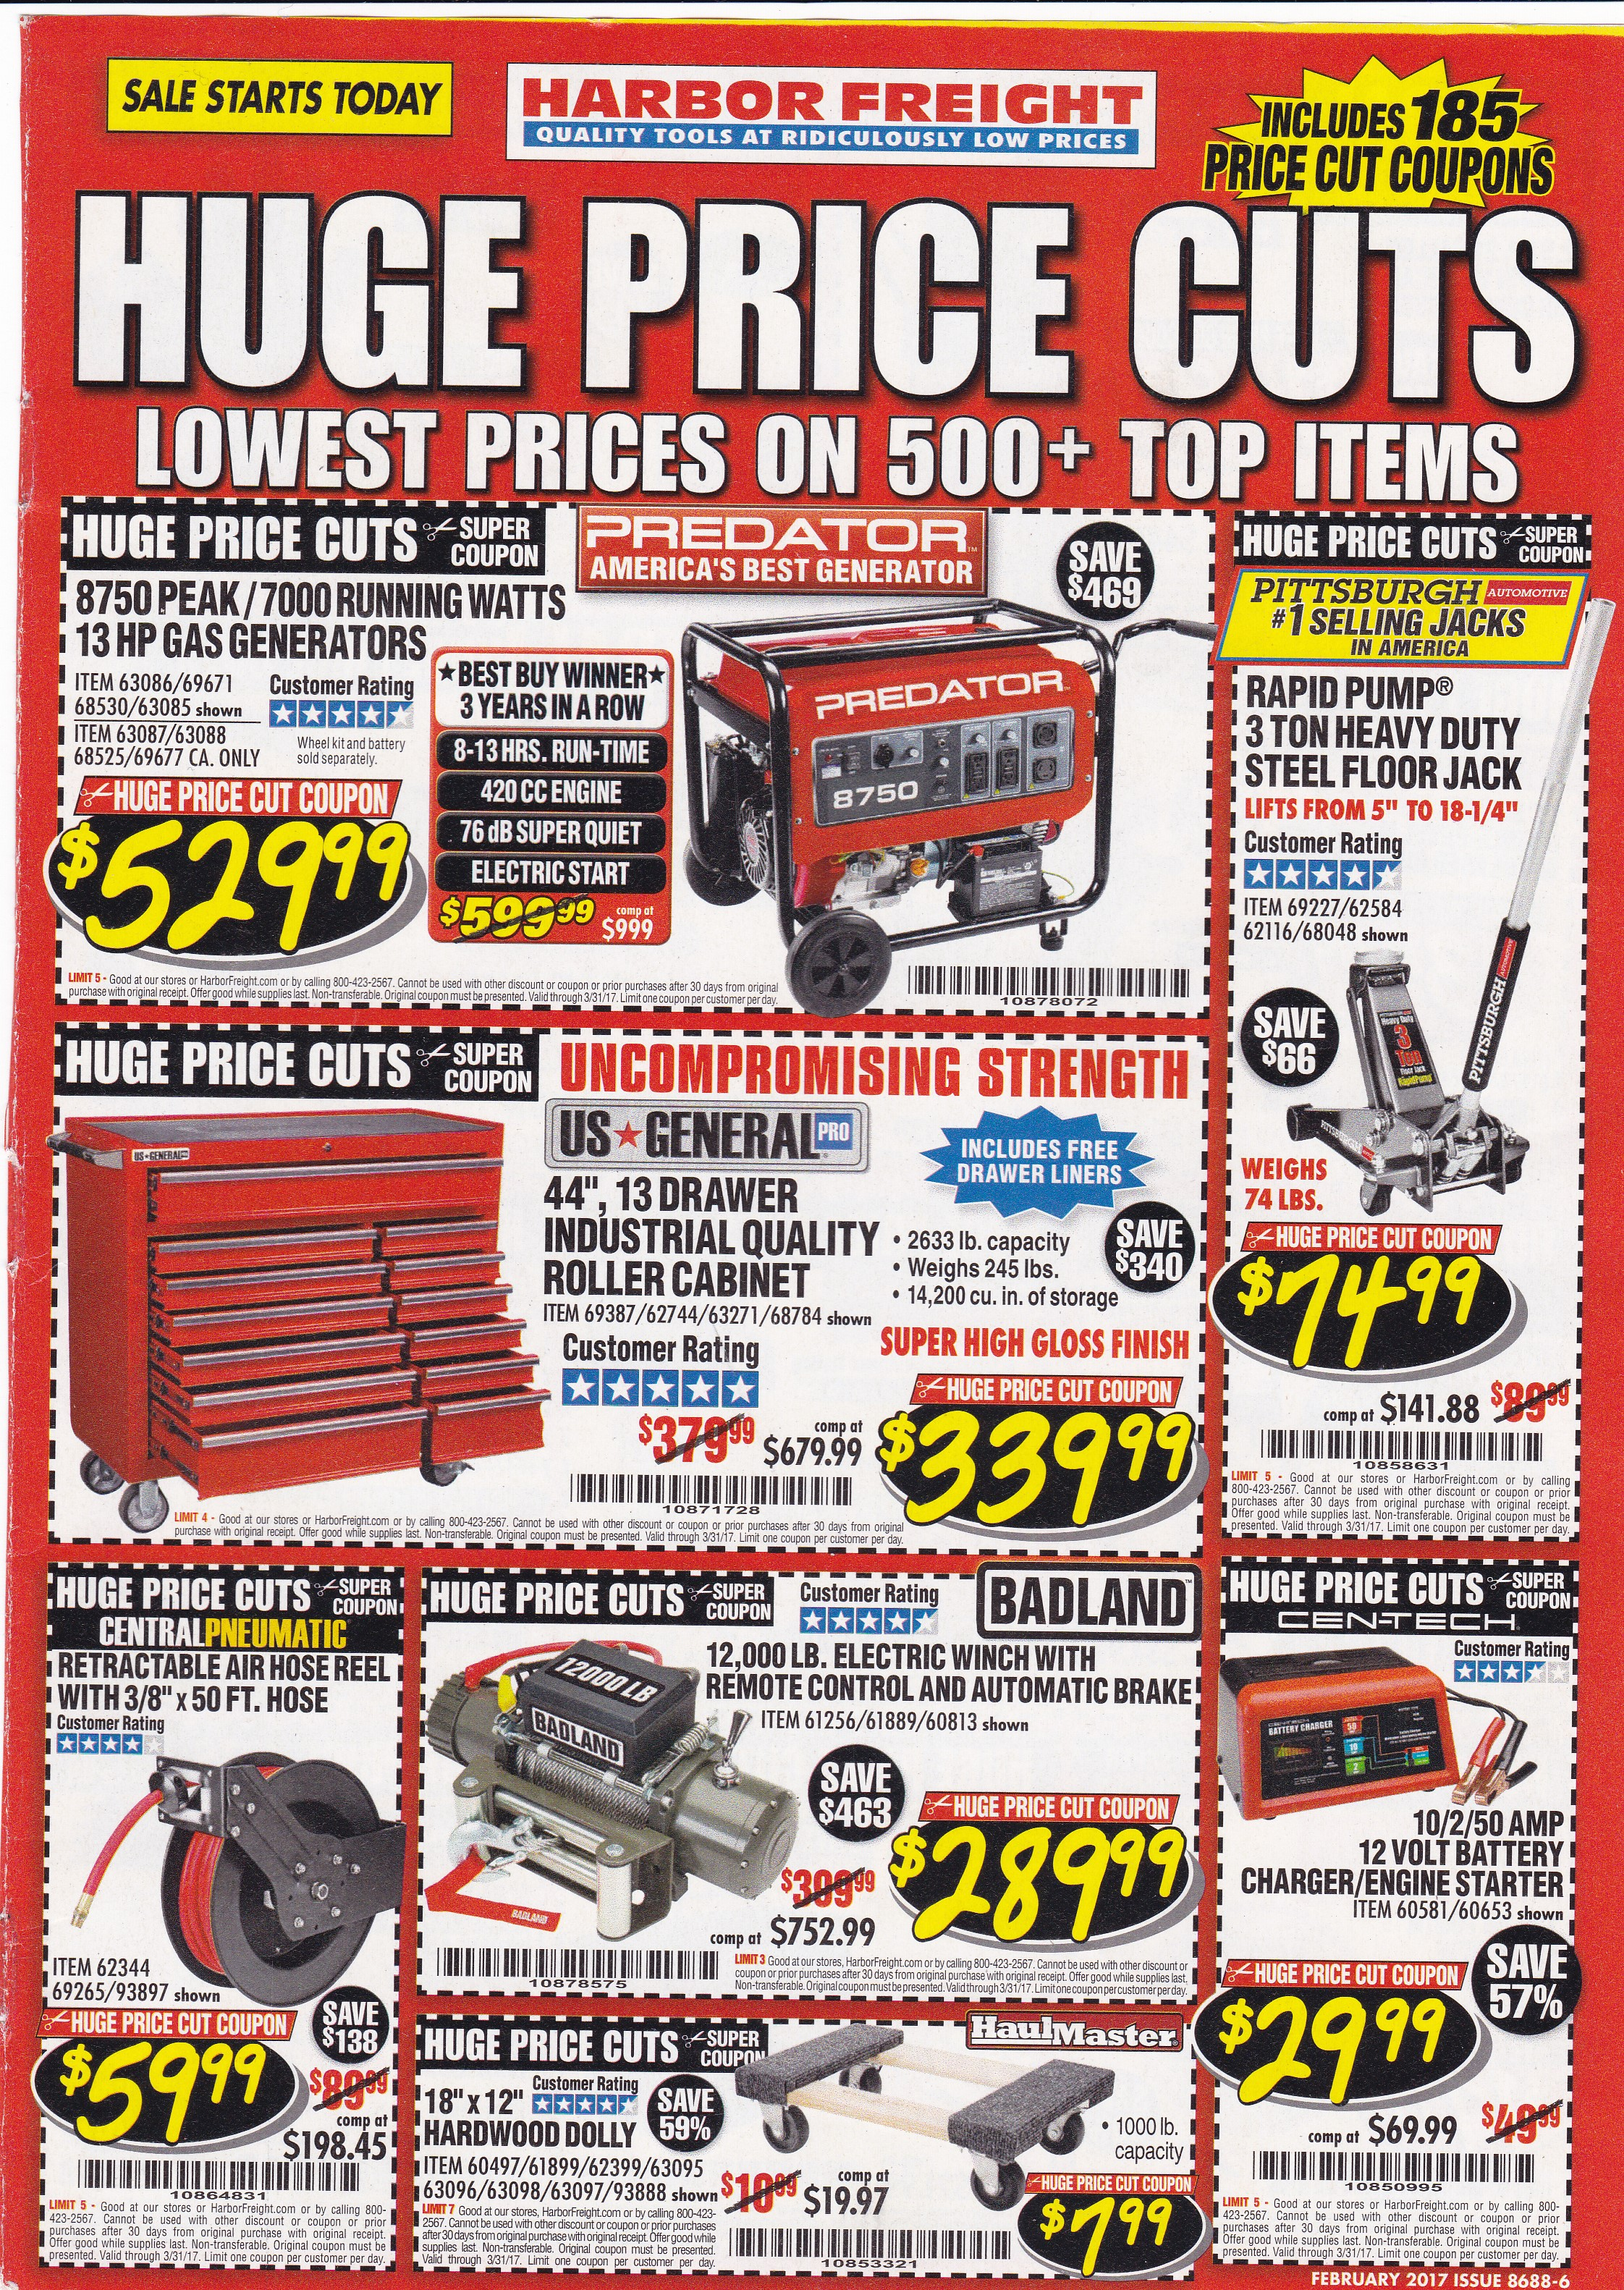 At Harbor Freight Tools we strive to deliver uncompromising value to our customers by providing quality tools at ridiculously low prices. We also take pride in communicating timely information about store events, sales and promotions through various online platforms. With that said our blog will be on a temporary hiatus as we discover new ways of providing our customers with exciting, fresh.